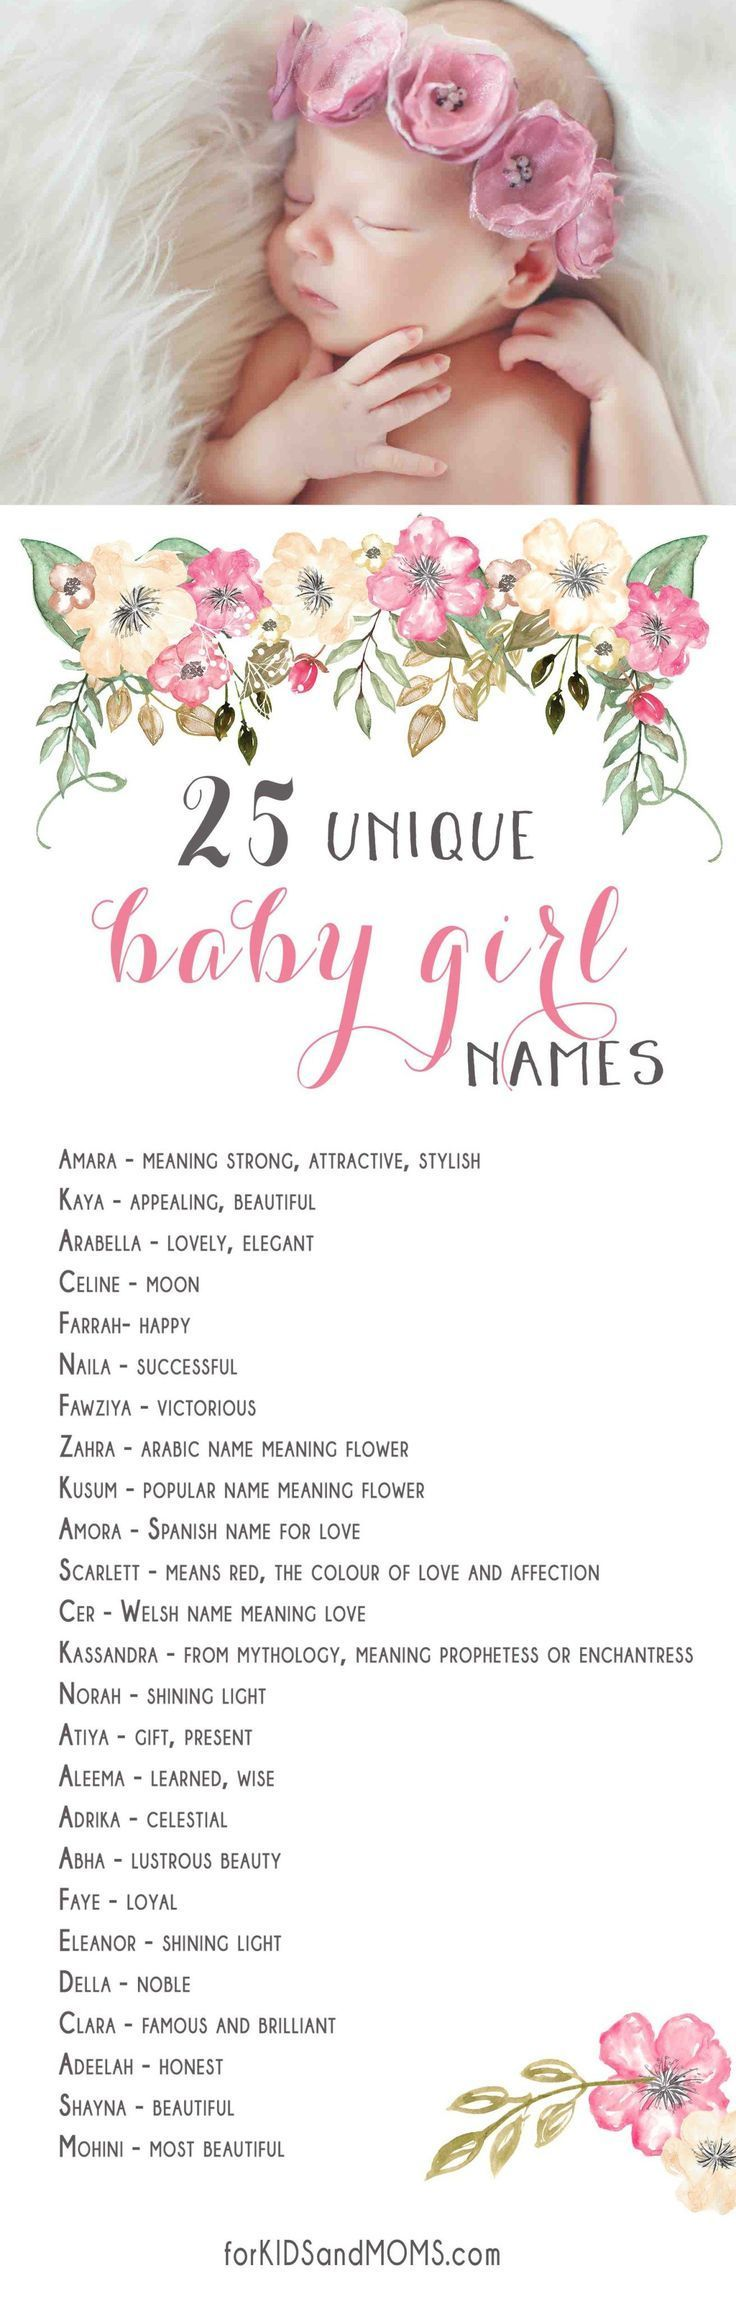 Find a Name for your Baby! - Paisley Baby Name - Ideas of ...